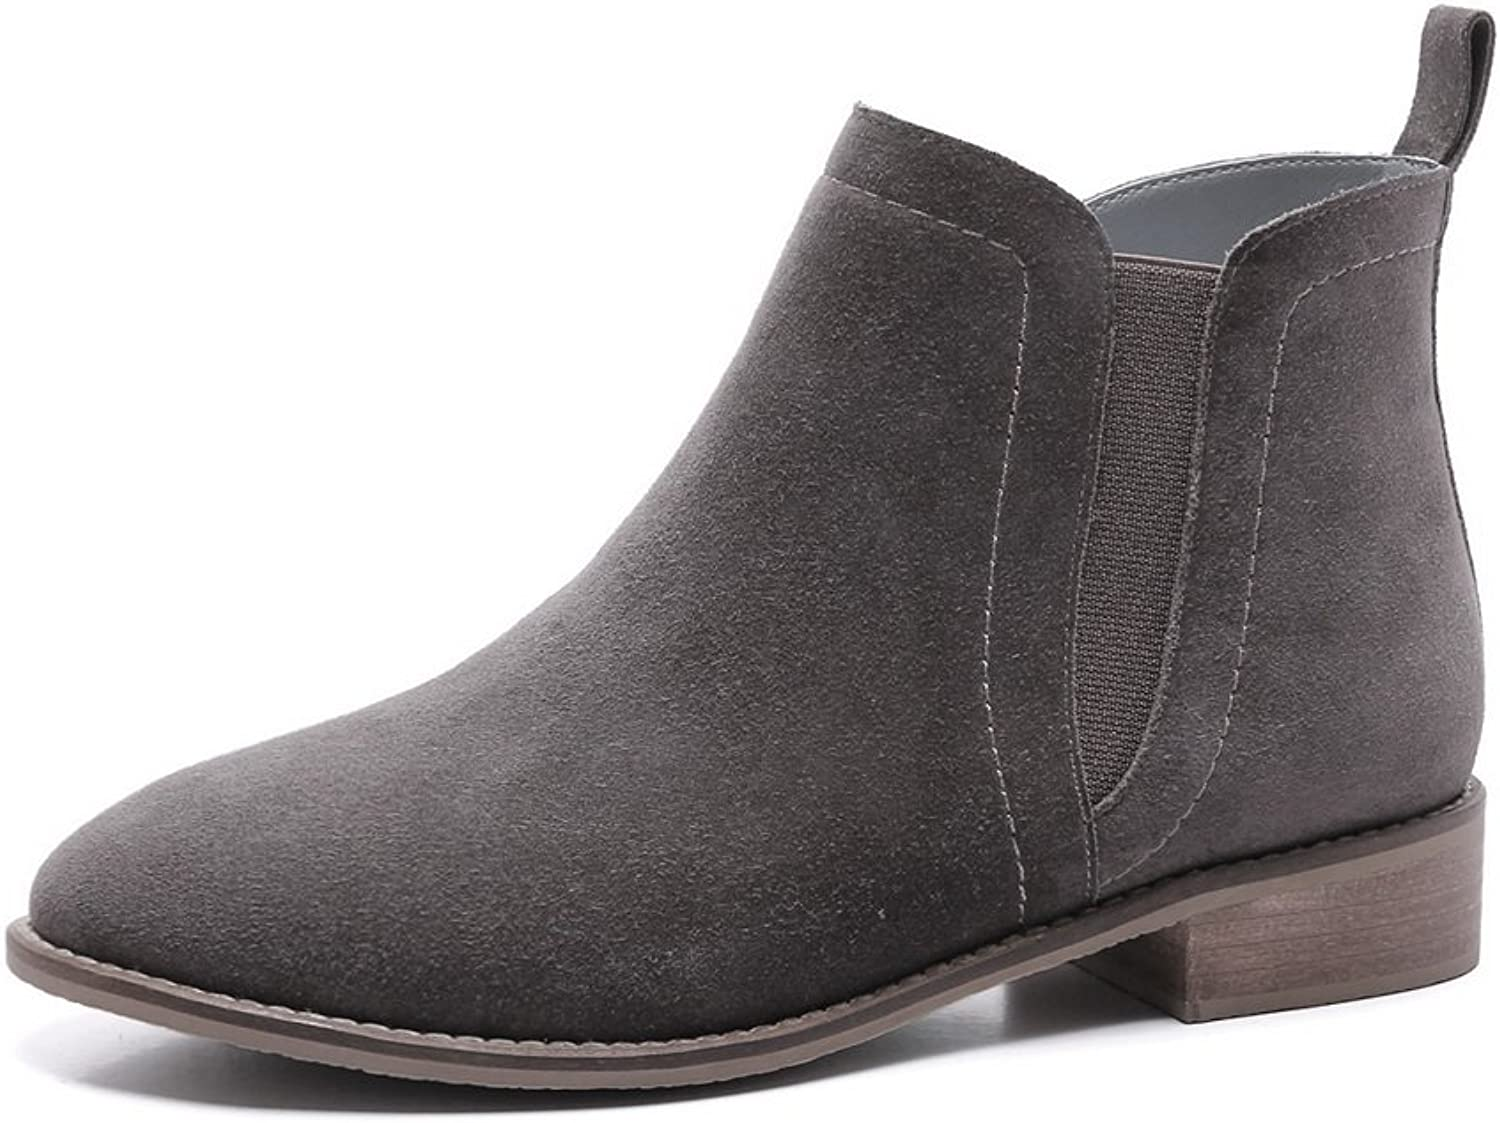 WeiPoot Women's Frosted Solid Closed Toe Boots with Thread and Non-Slipping Sole